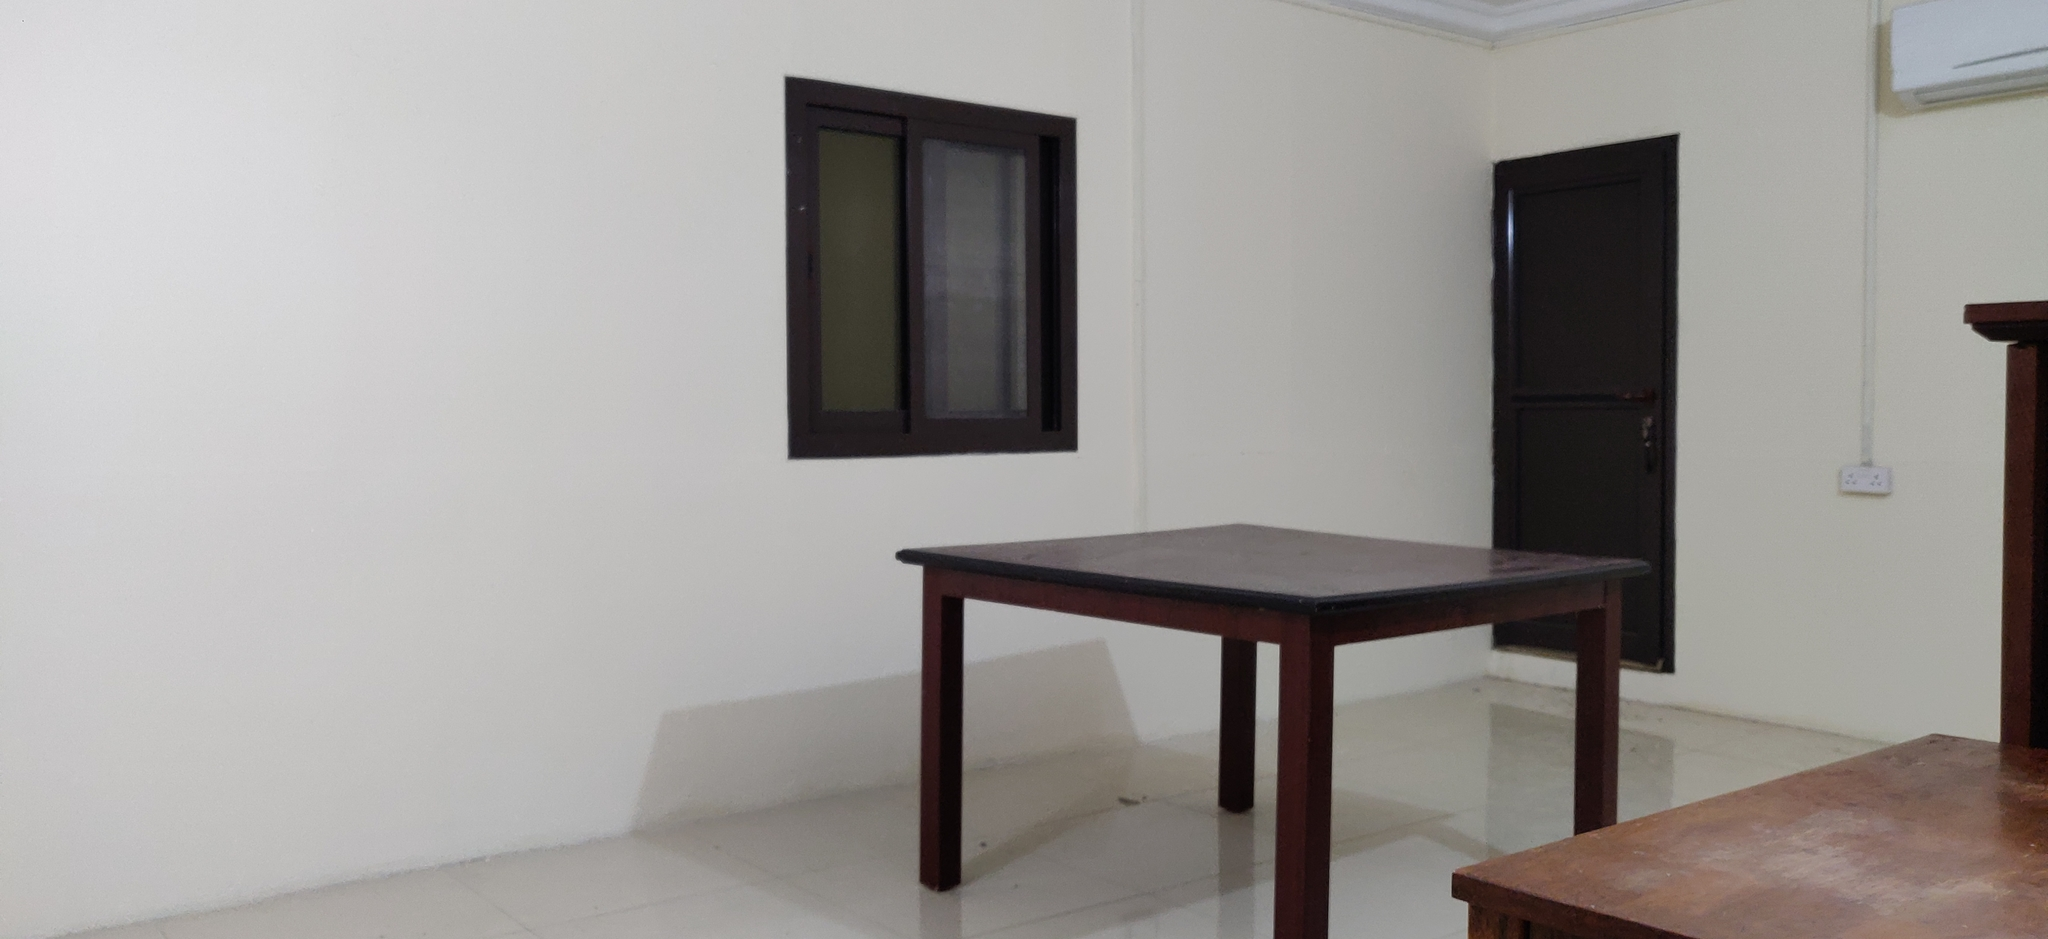 SPACIOUS VILLA PORTION 1 BHK AVAILABLE AT AL MAAMOURA (OPPO. PARCO MALL)